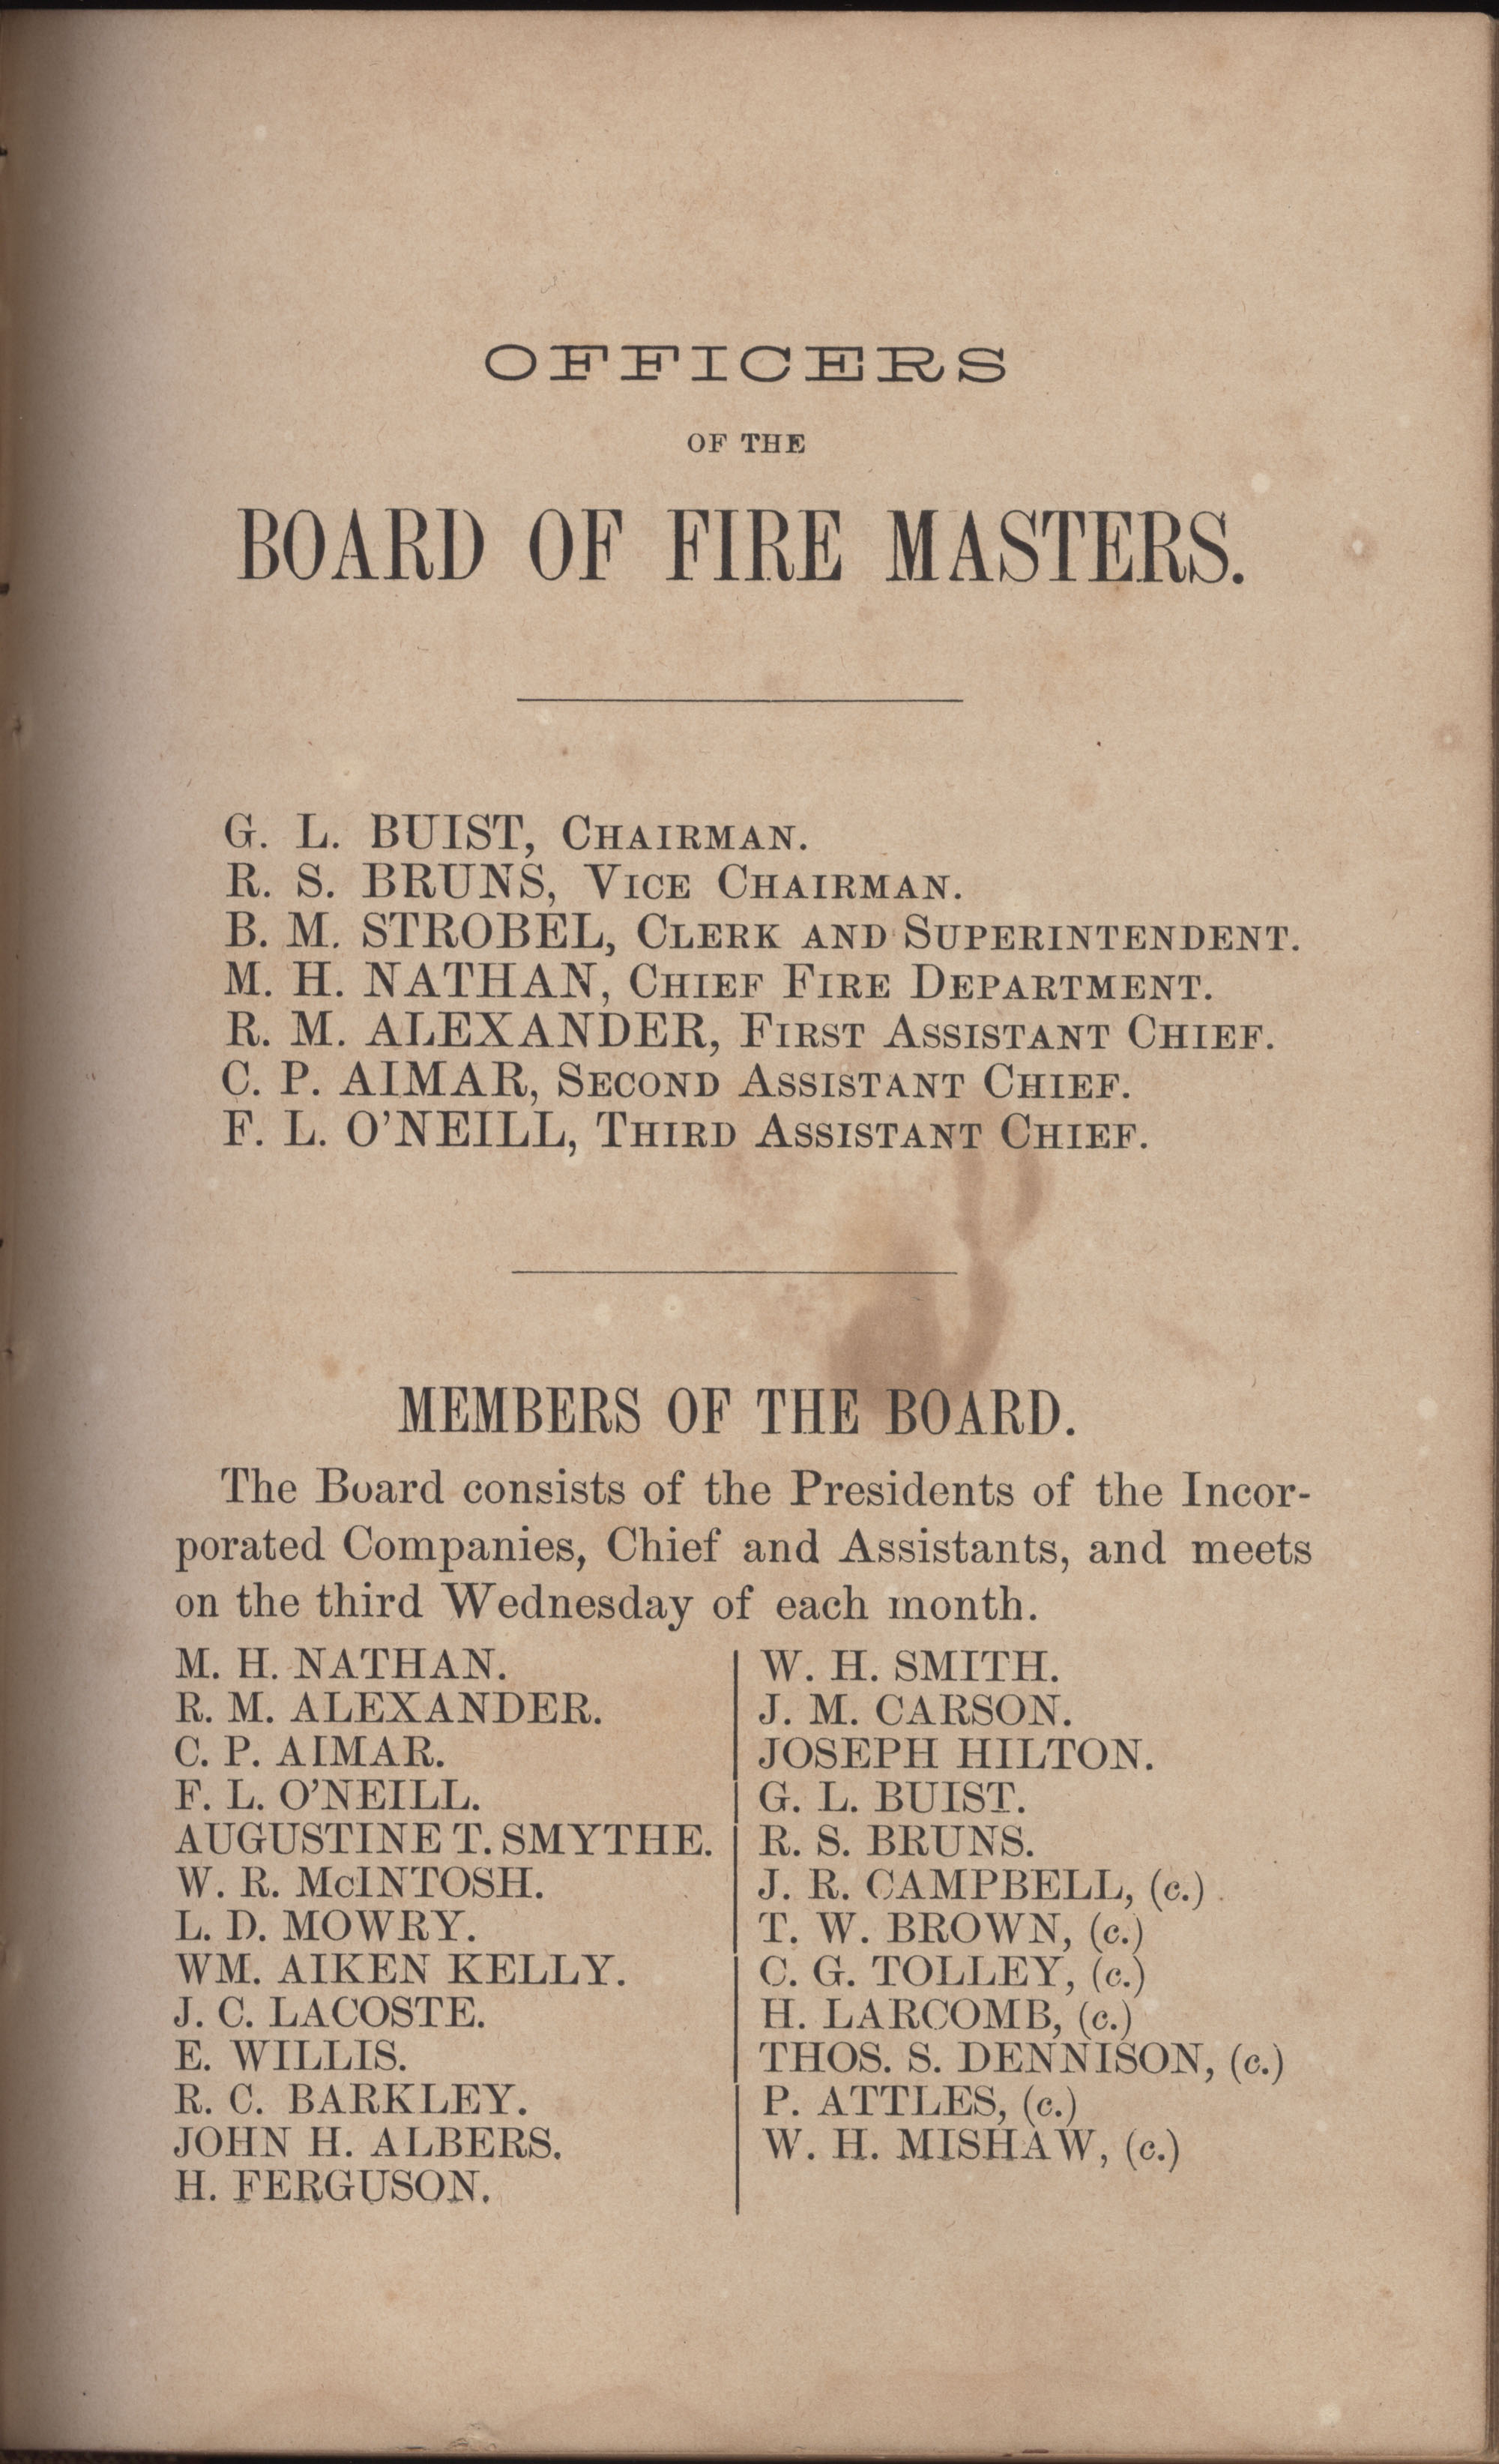 Annual Report of the Chief of the Fire Department of the City of Charleston, page 295